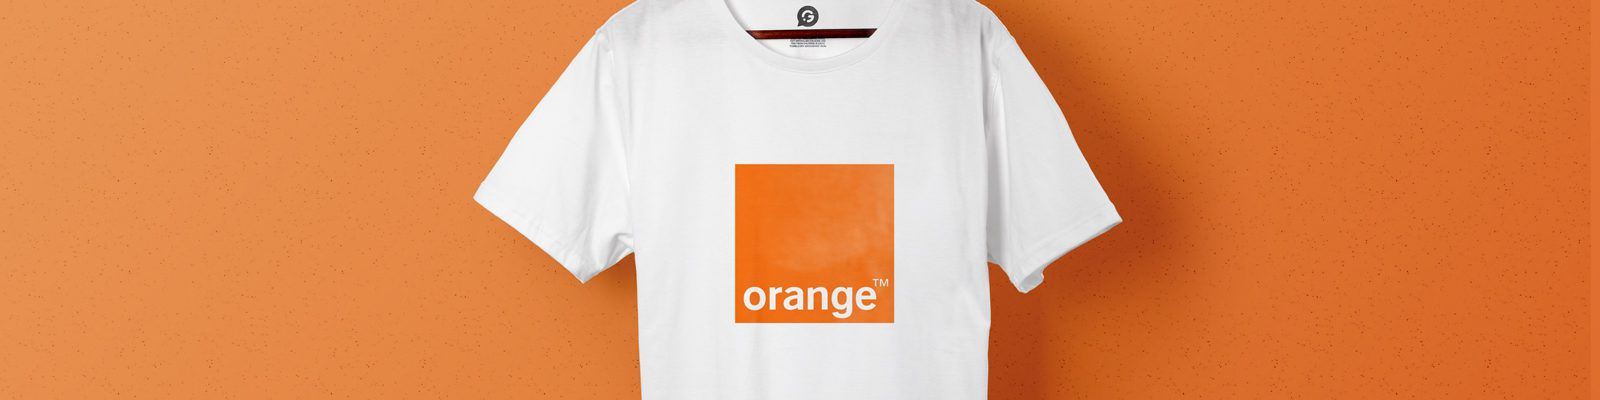 Orange's New Mobile Technology Promoted Through Printed T-Shirts - Header Image